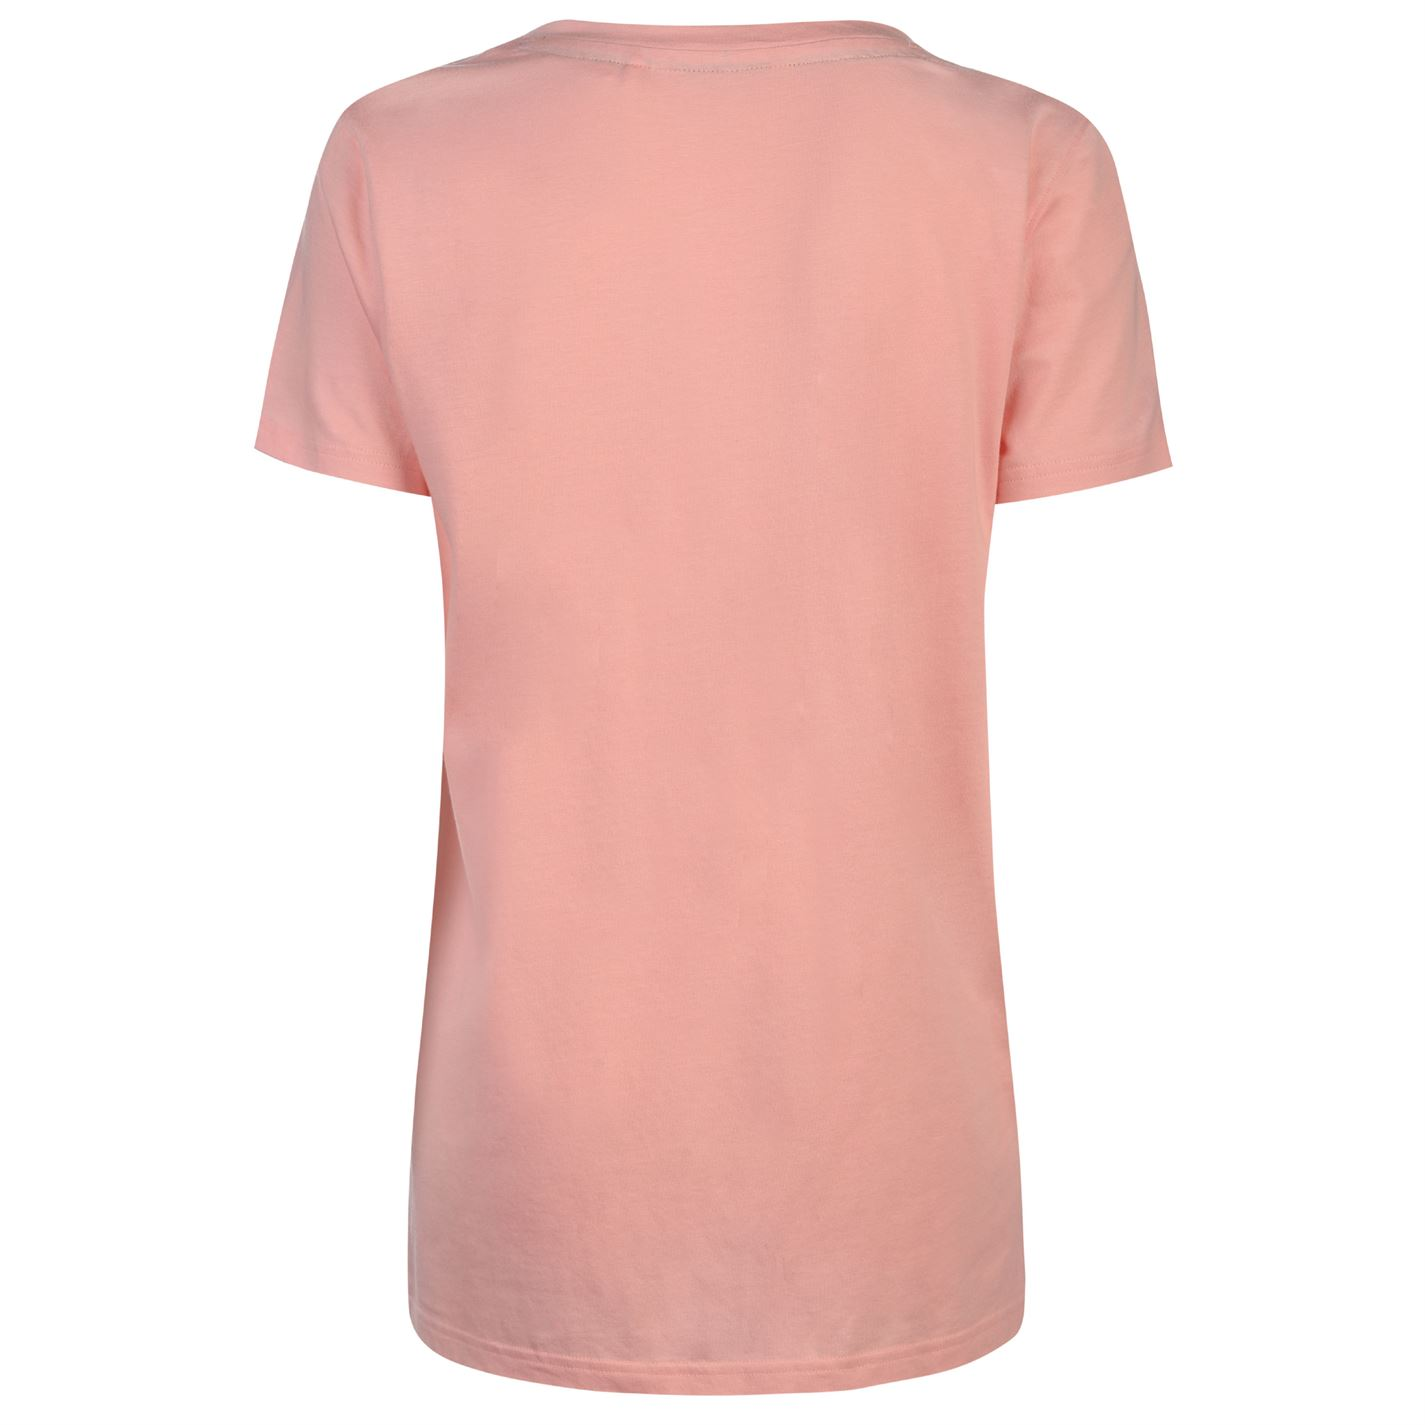 SoulCal Fashion Luxe T Shirt Ladies Crew Neck Tee Top Short Sleeve Stamp